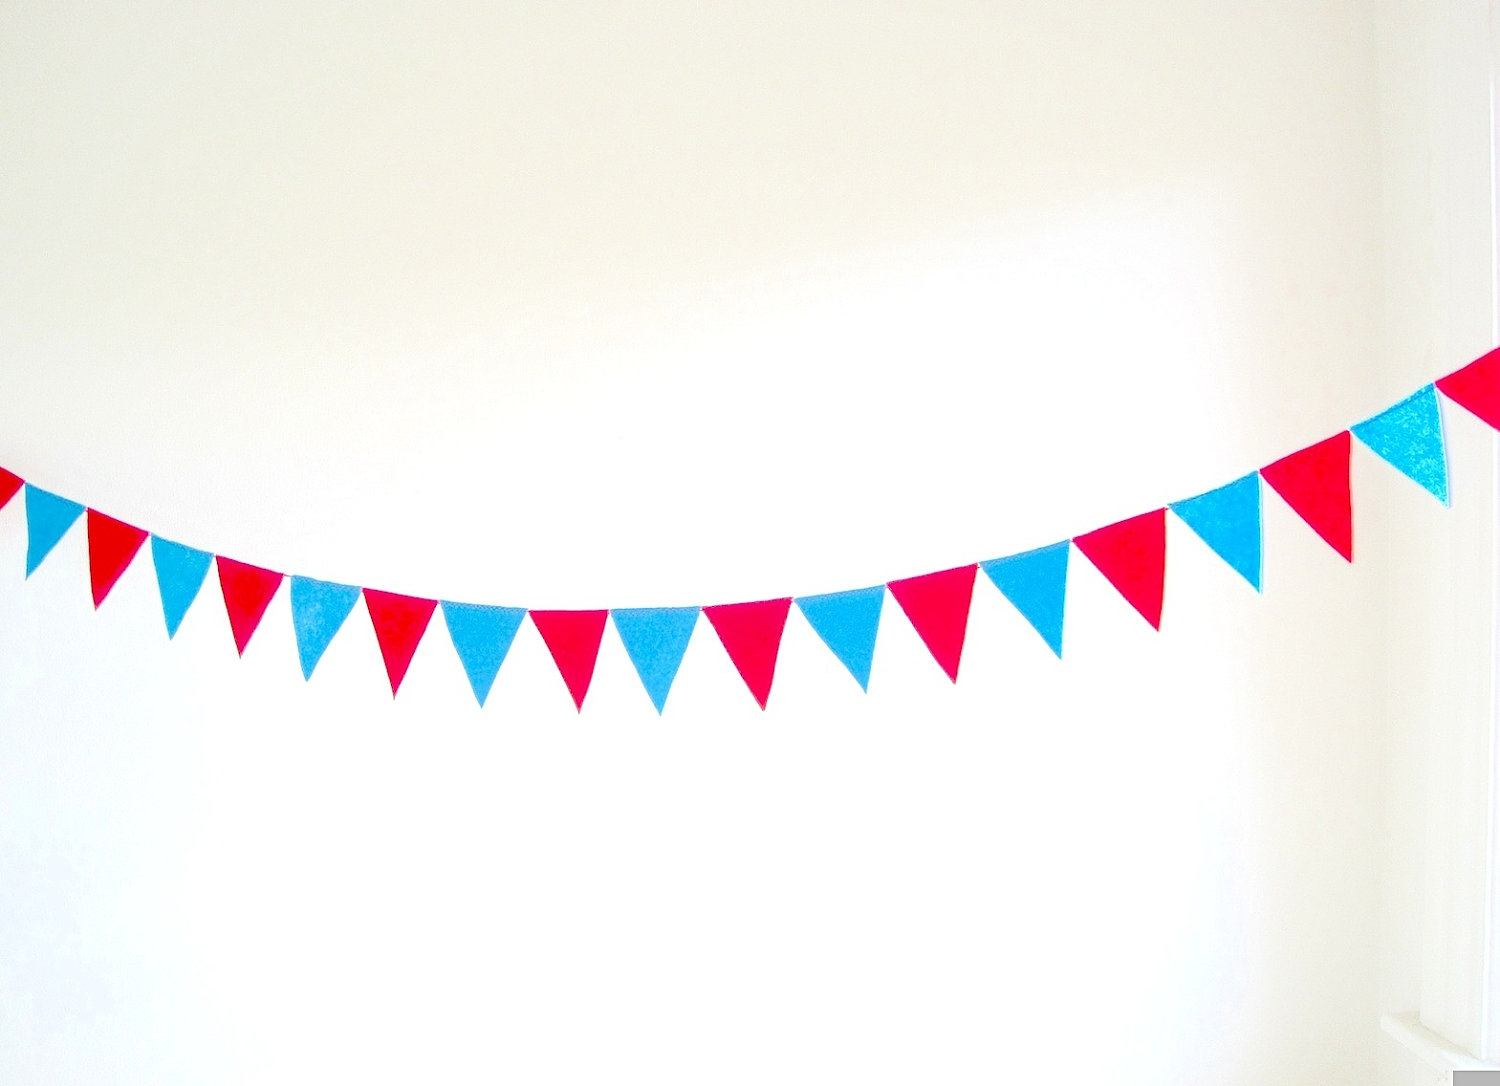 Free Festival Flags Cliparts, Download Free Clip Art, Free Clip Art.